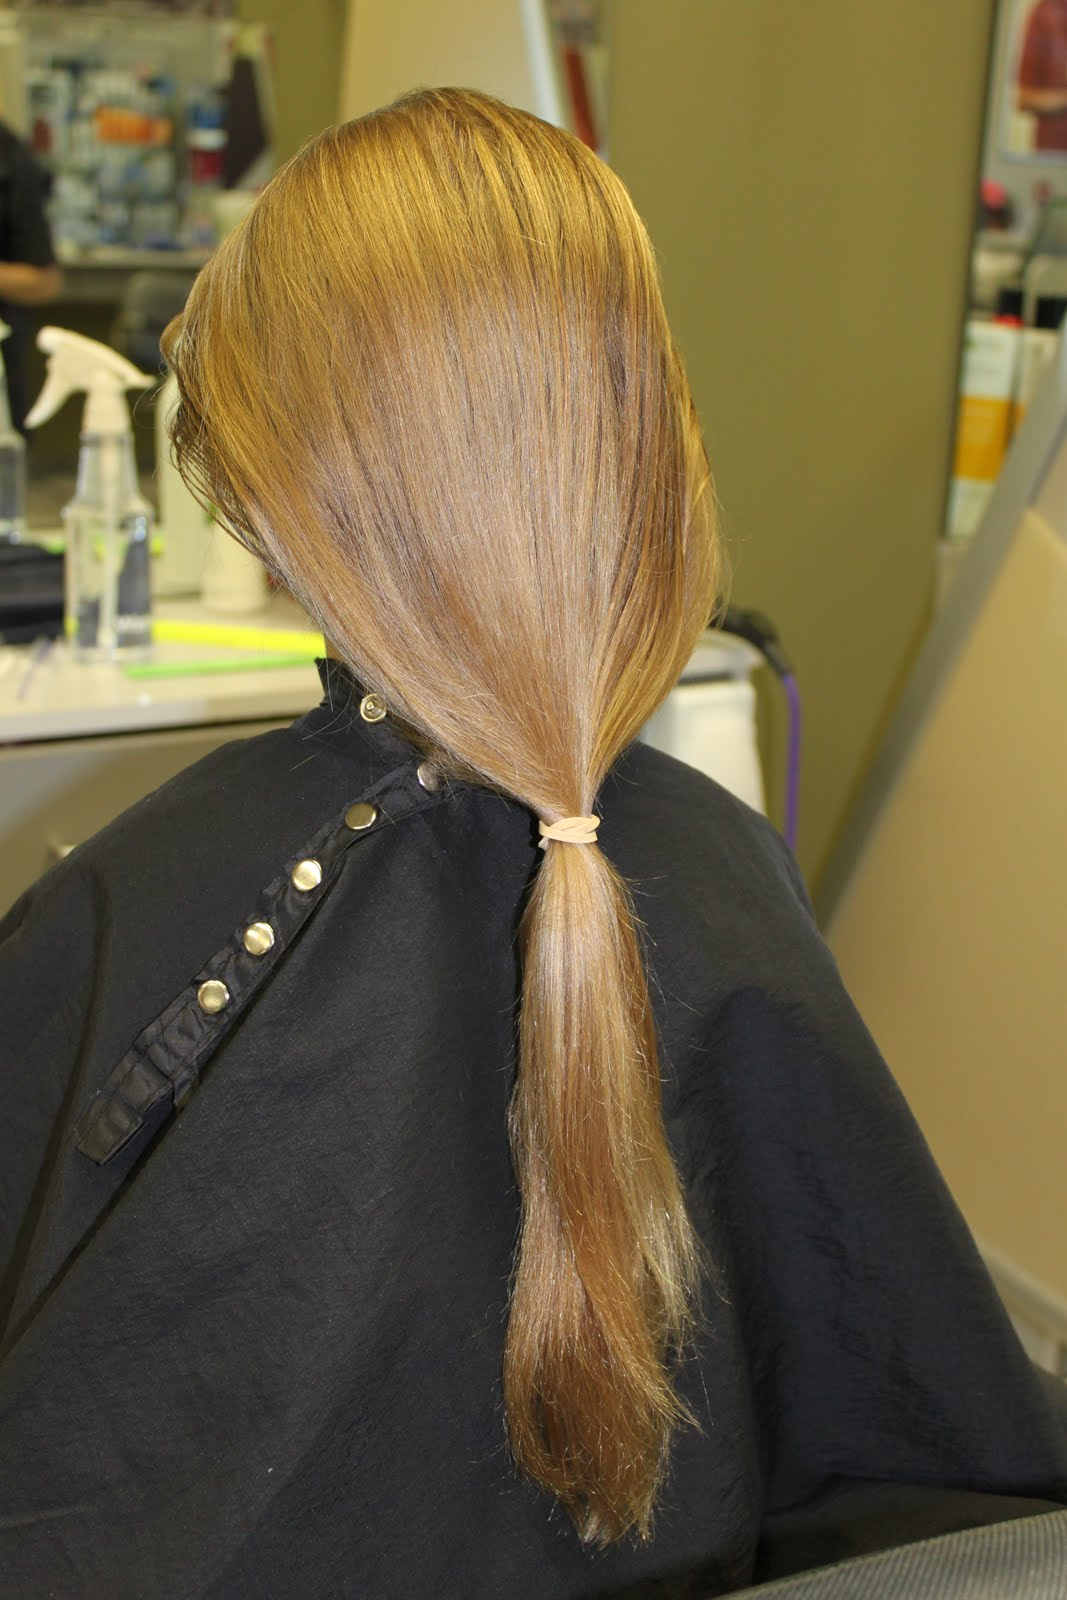 ... out another little and wanted to donate her hair to Locks of Love